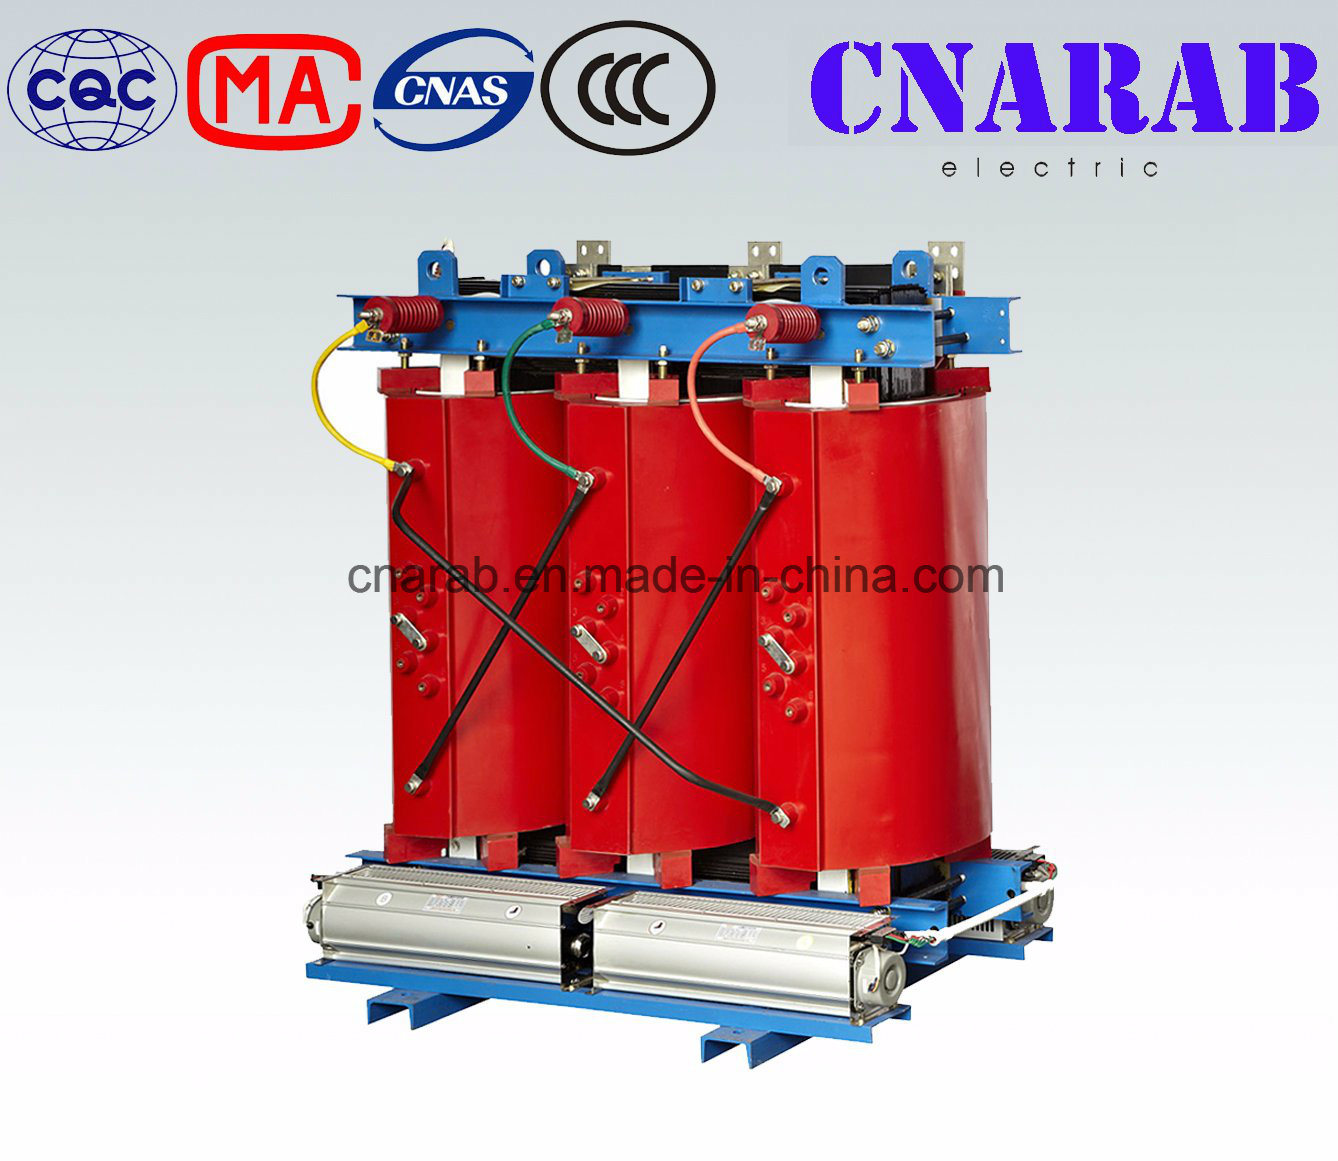 Epoxy Resin Cast Dry-Type Power Transformer (SC(B) 9, Sc (B)10)